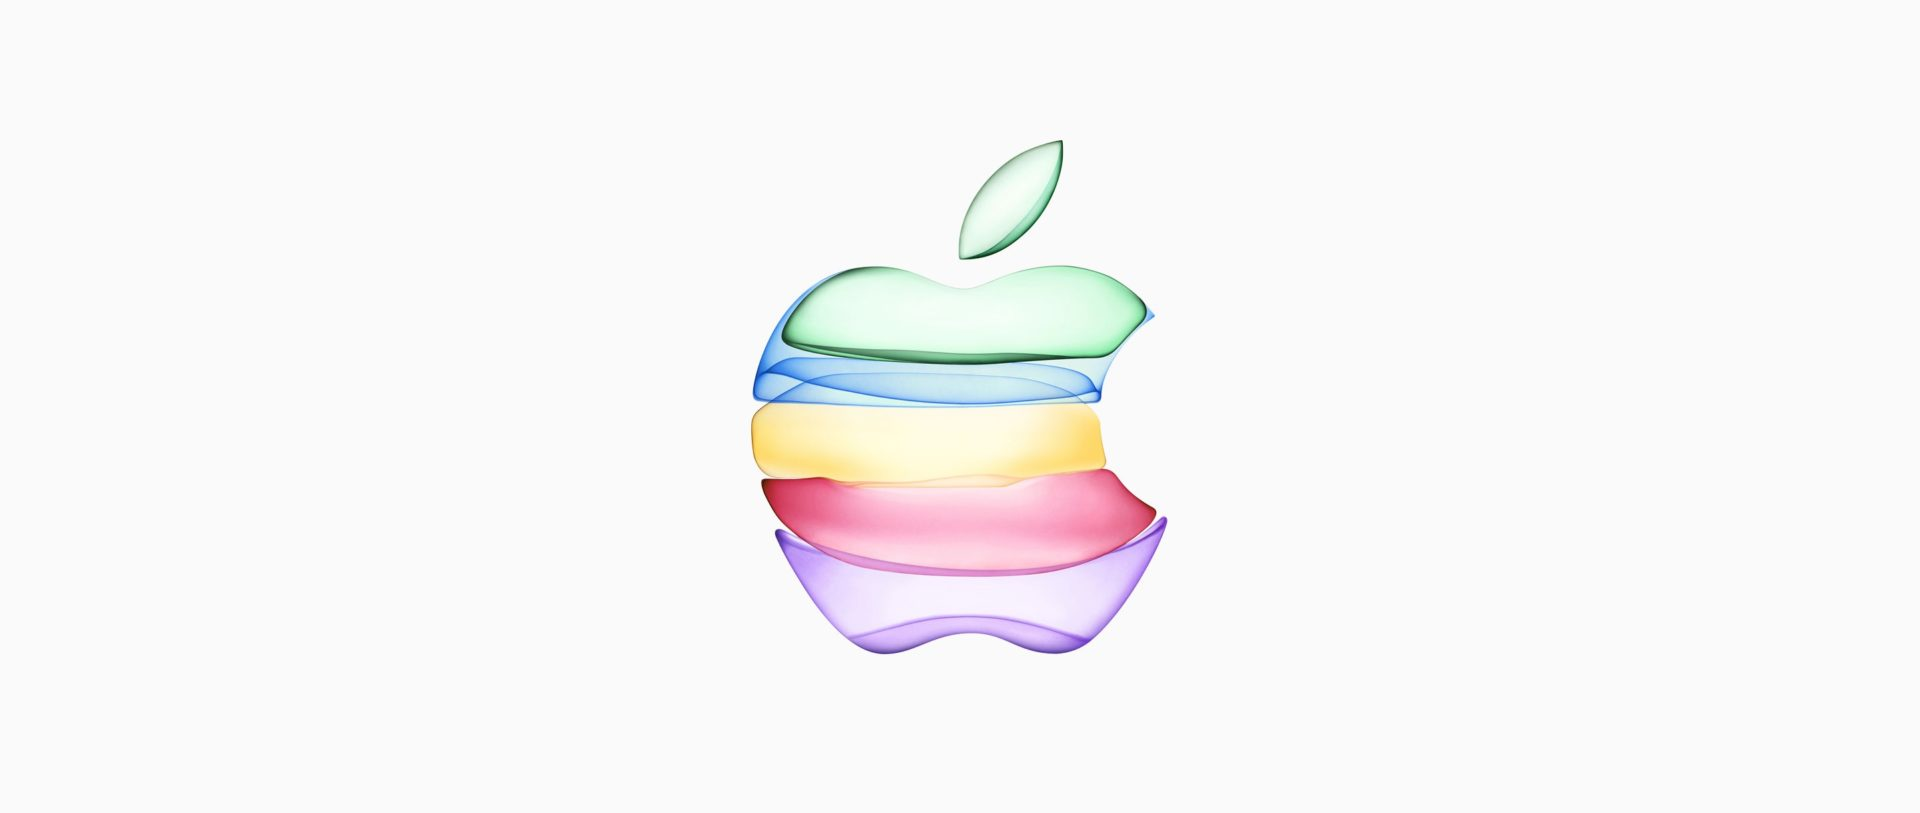 Apple Special Event 10 Septeber 2019 iPhone 11 Pro